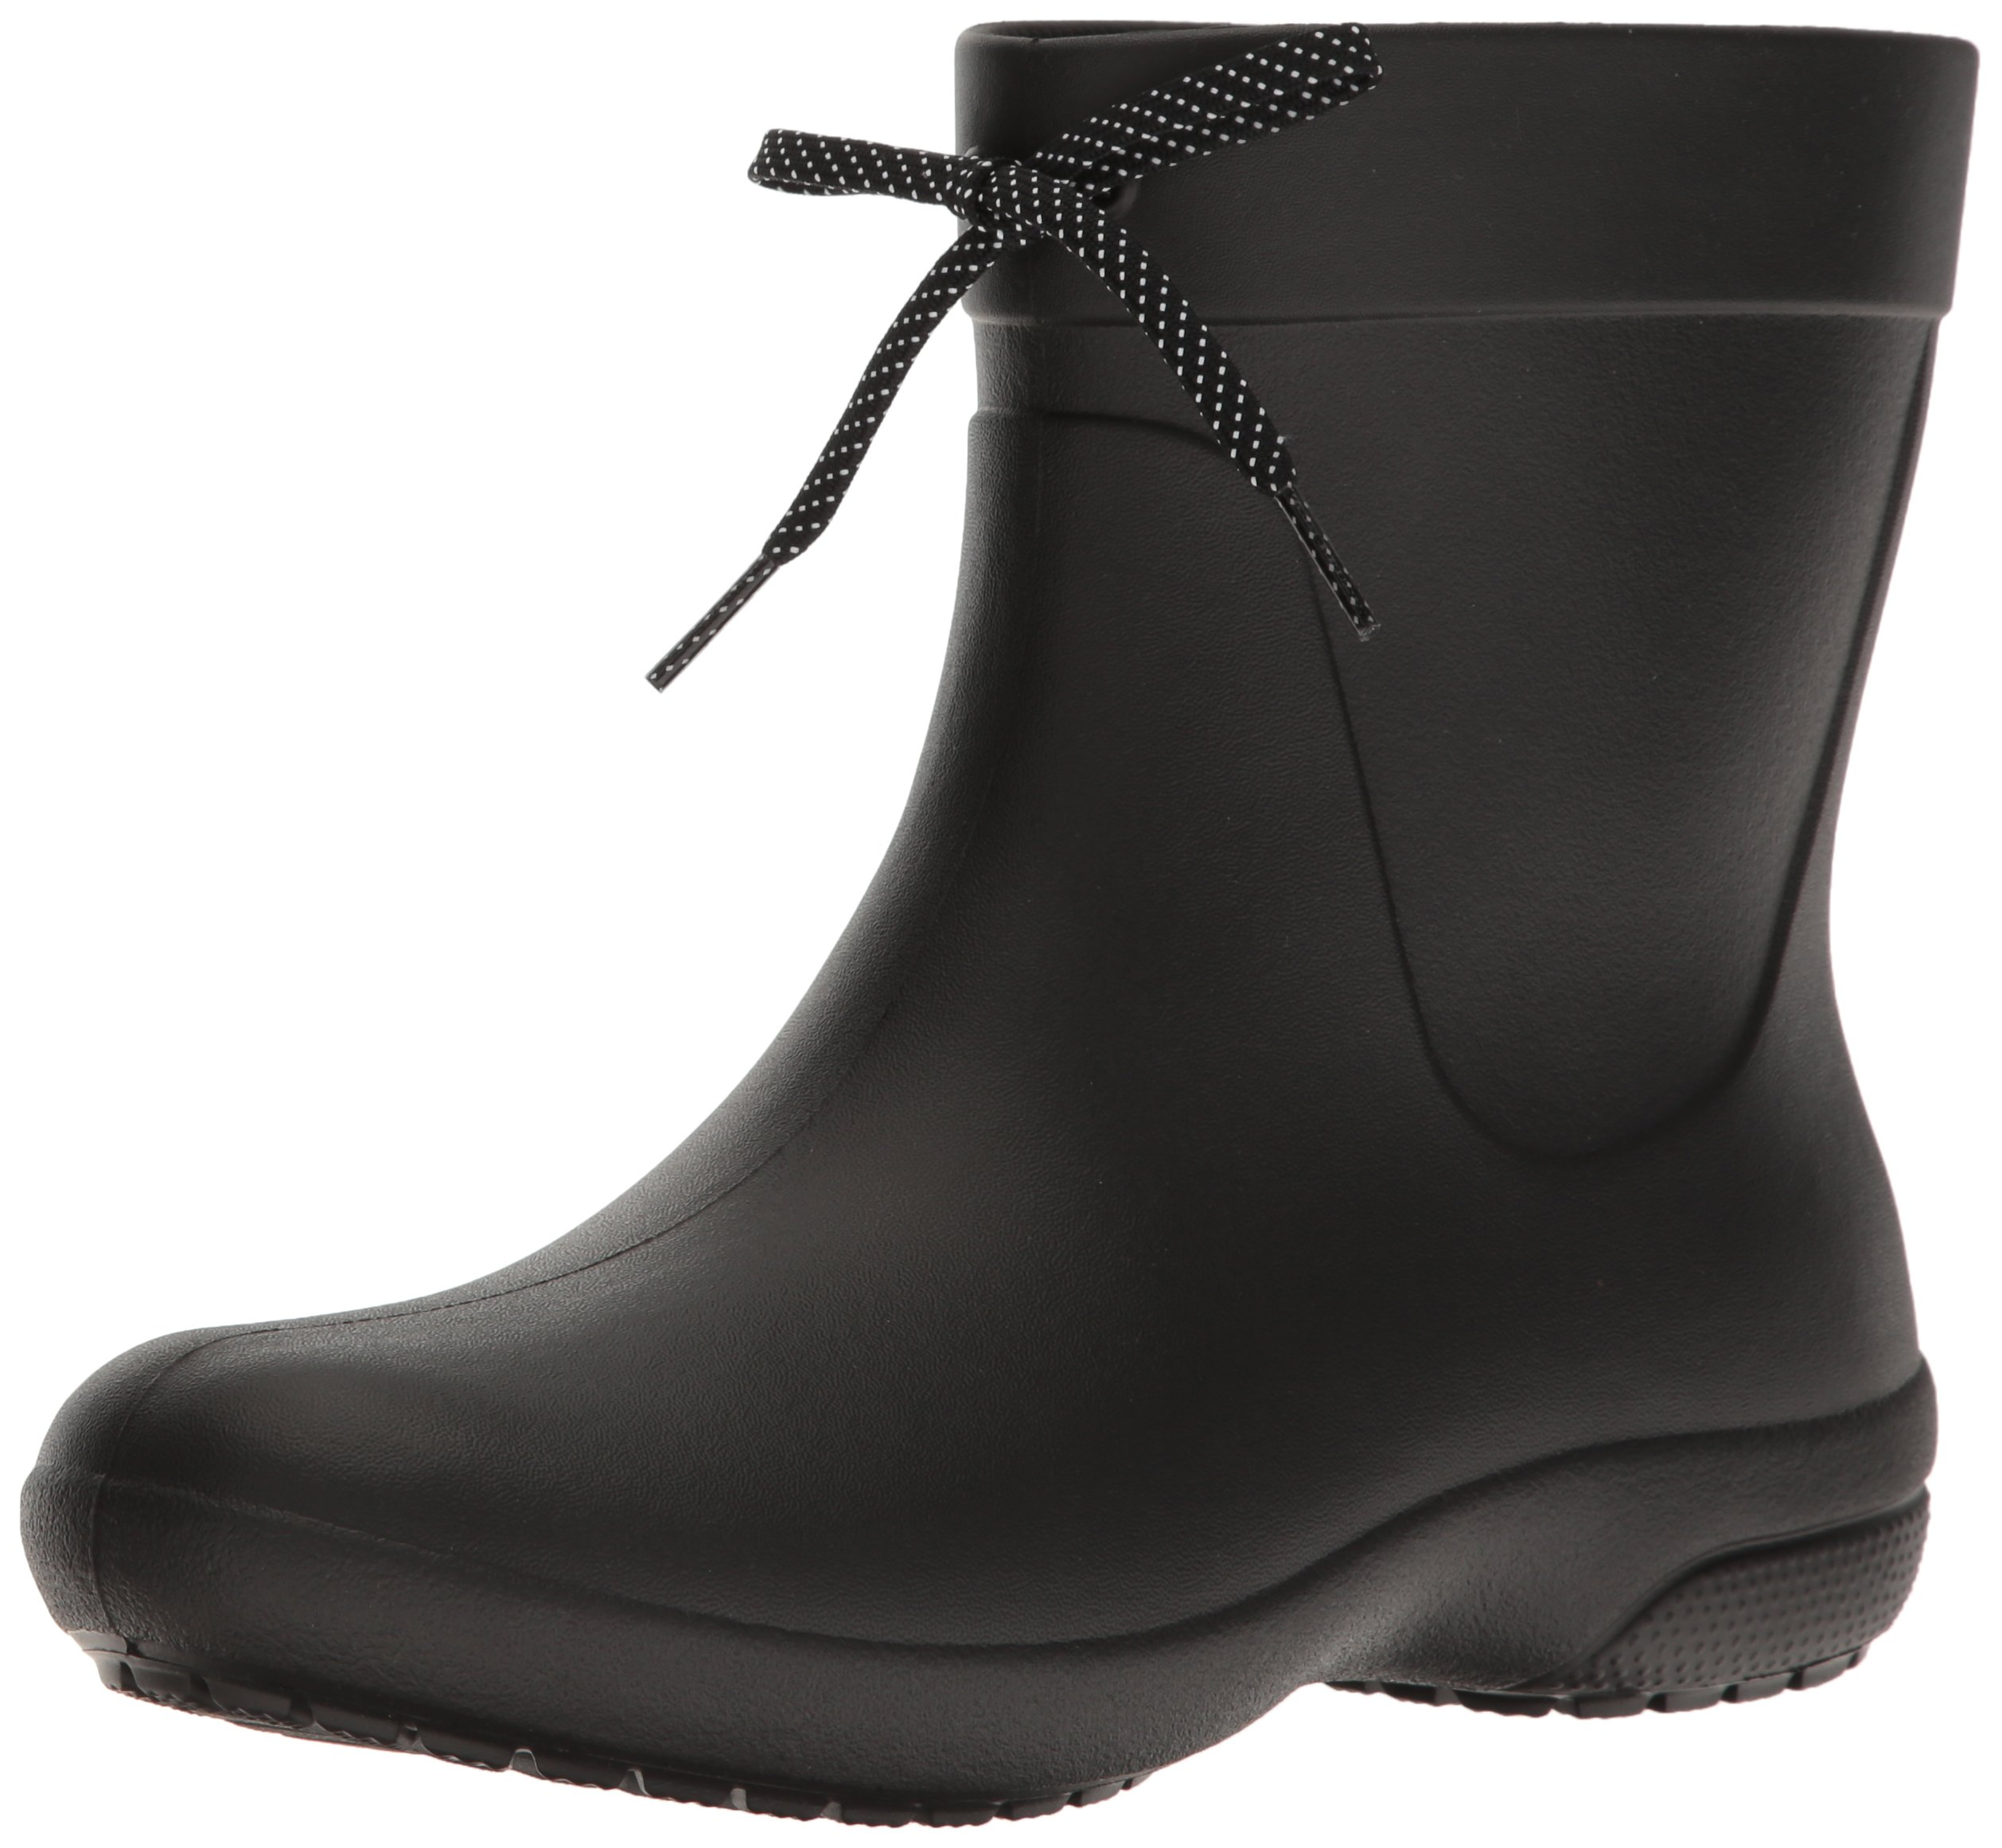 Crocs Women's Freesail Shorty Rainboot, Black, 8 M US